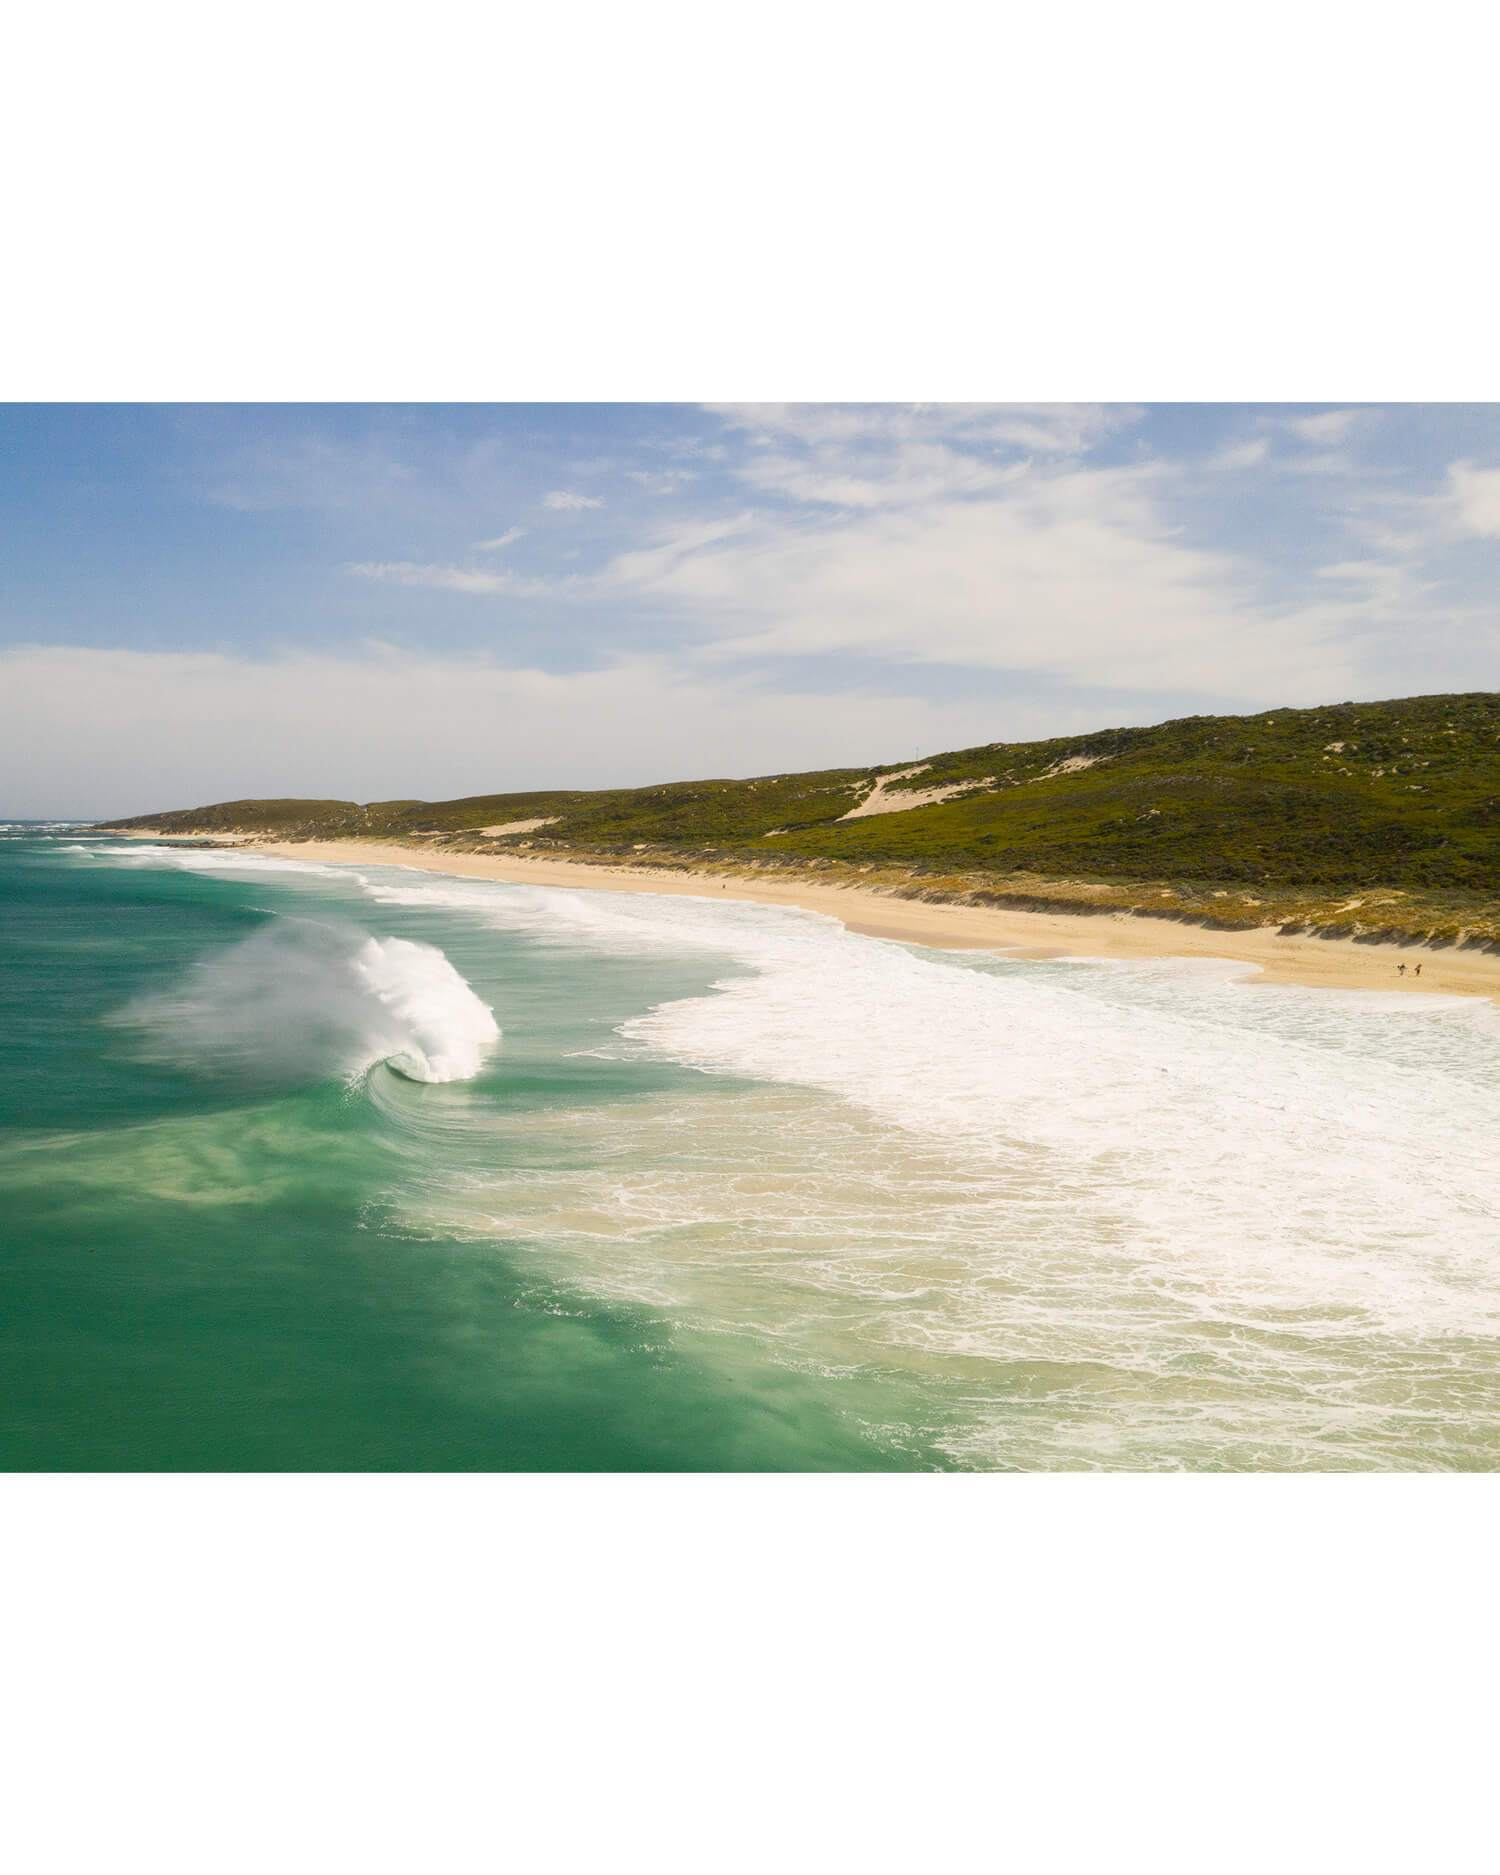 Azure Co - Landscape and Surf Photography, Margaret River Western Australia